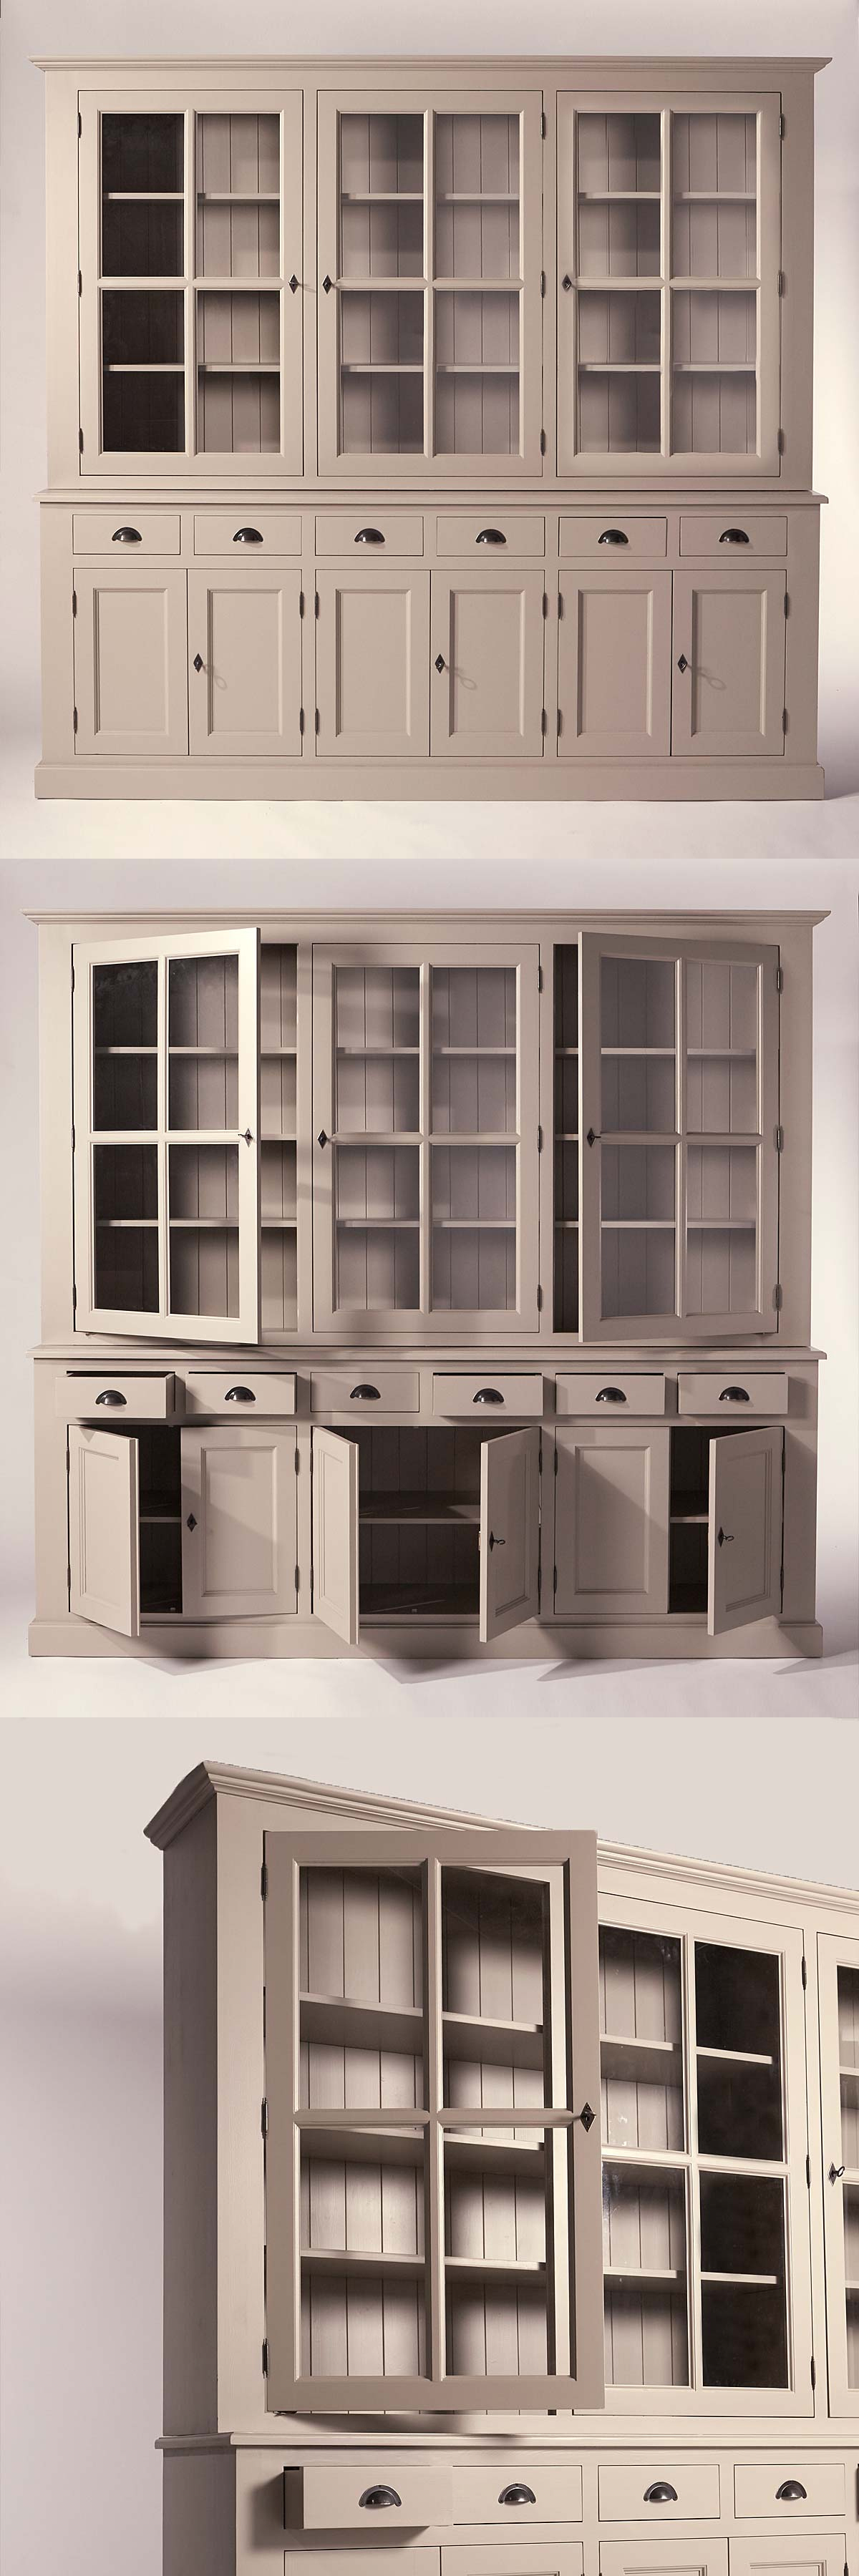 Grand buffet vaisselier couleur taupe le meuble for Meuble vaisselier